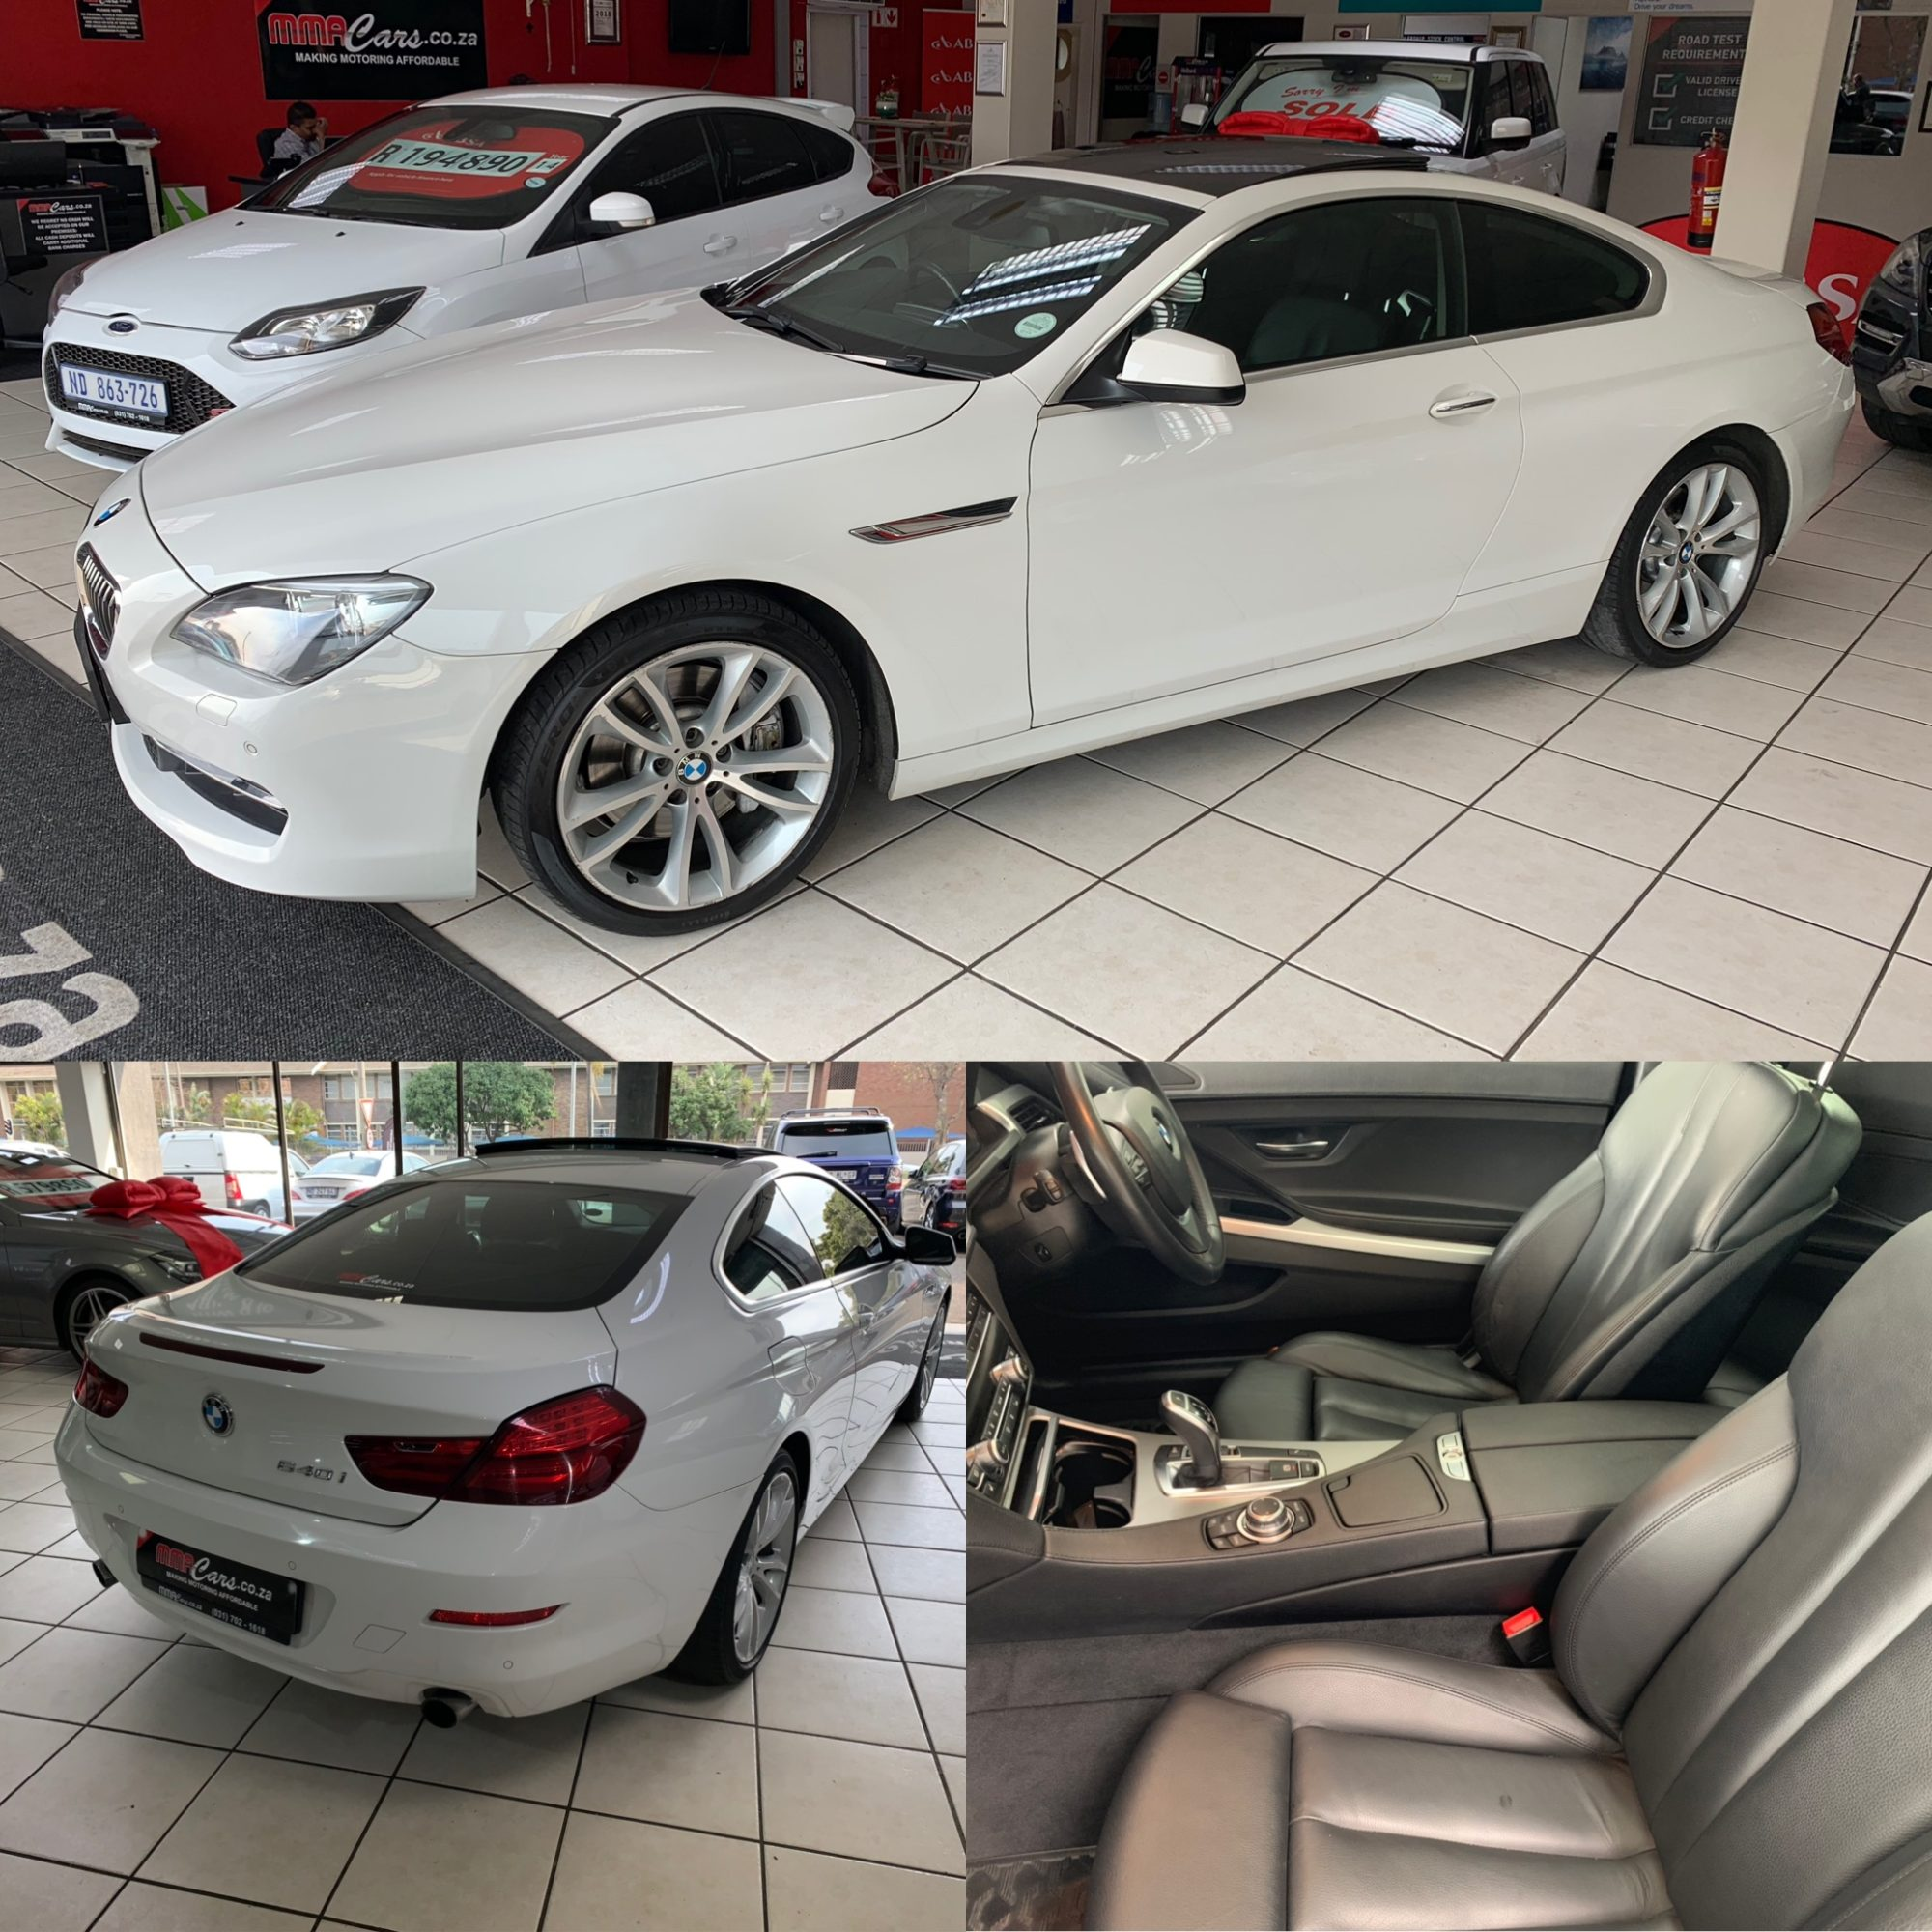 Panoramic Roof Cars >> 2012 Bmw 640i Coupe With Panoramic Roof